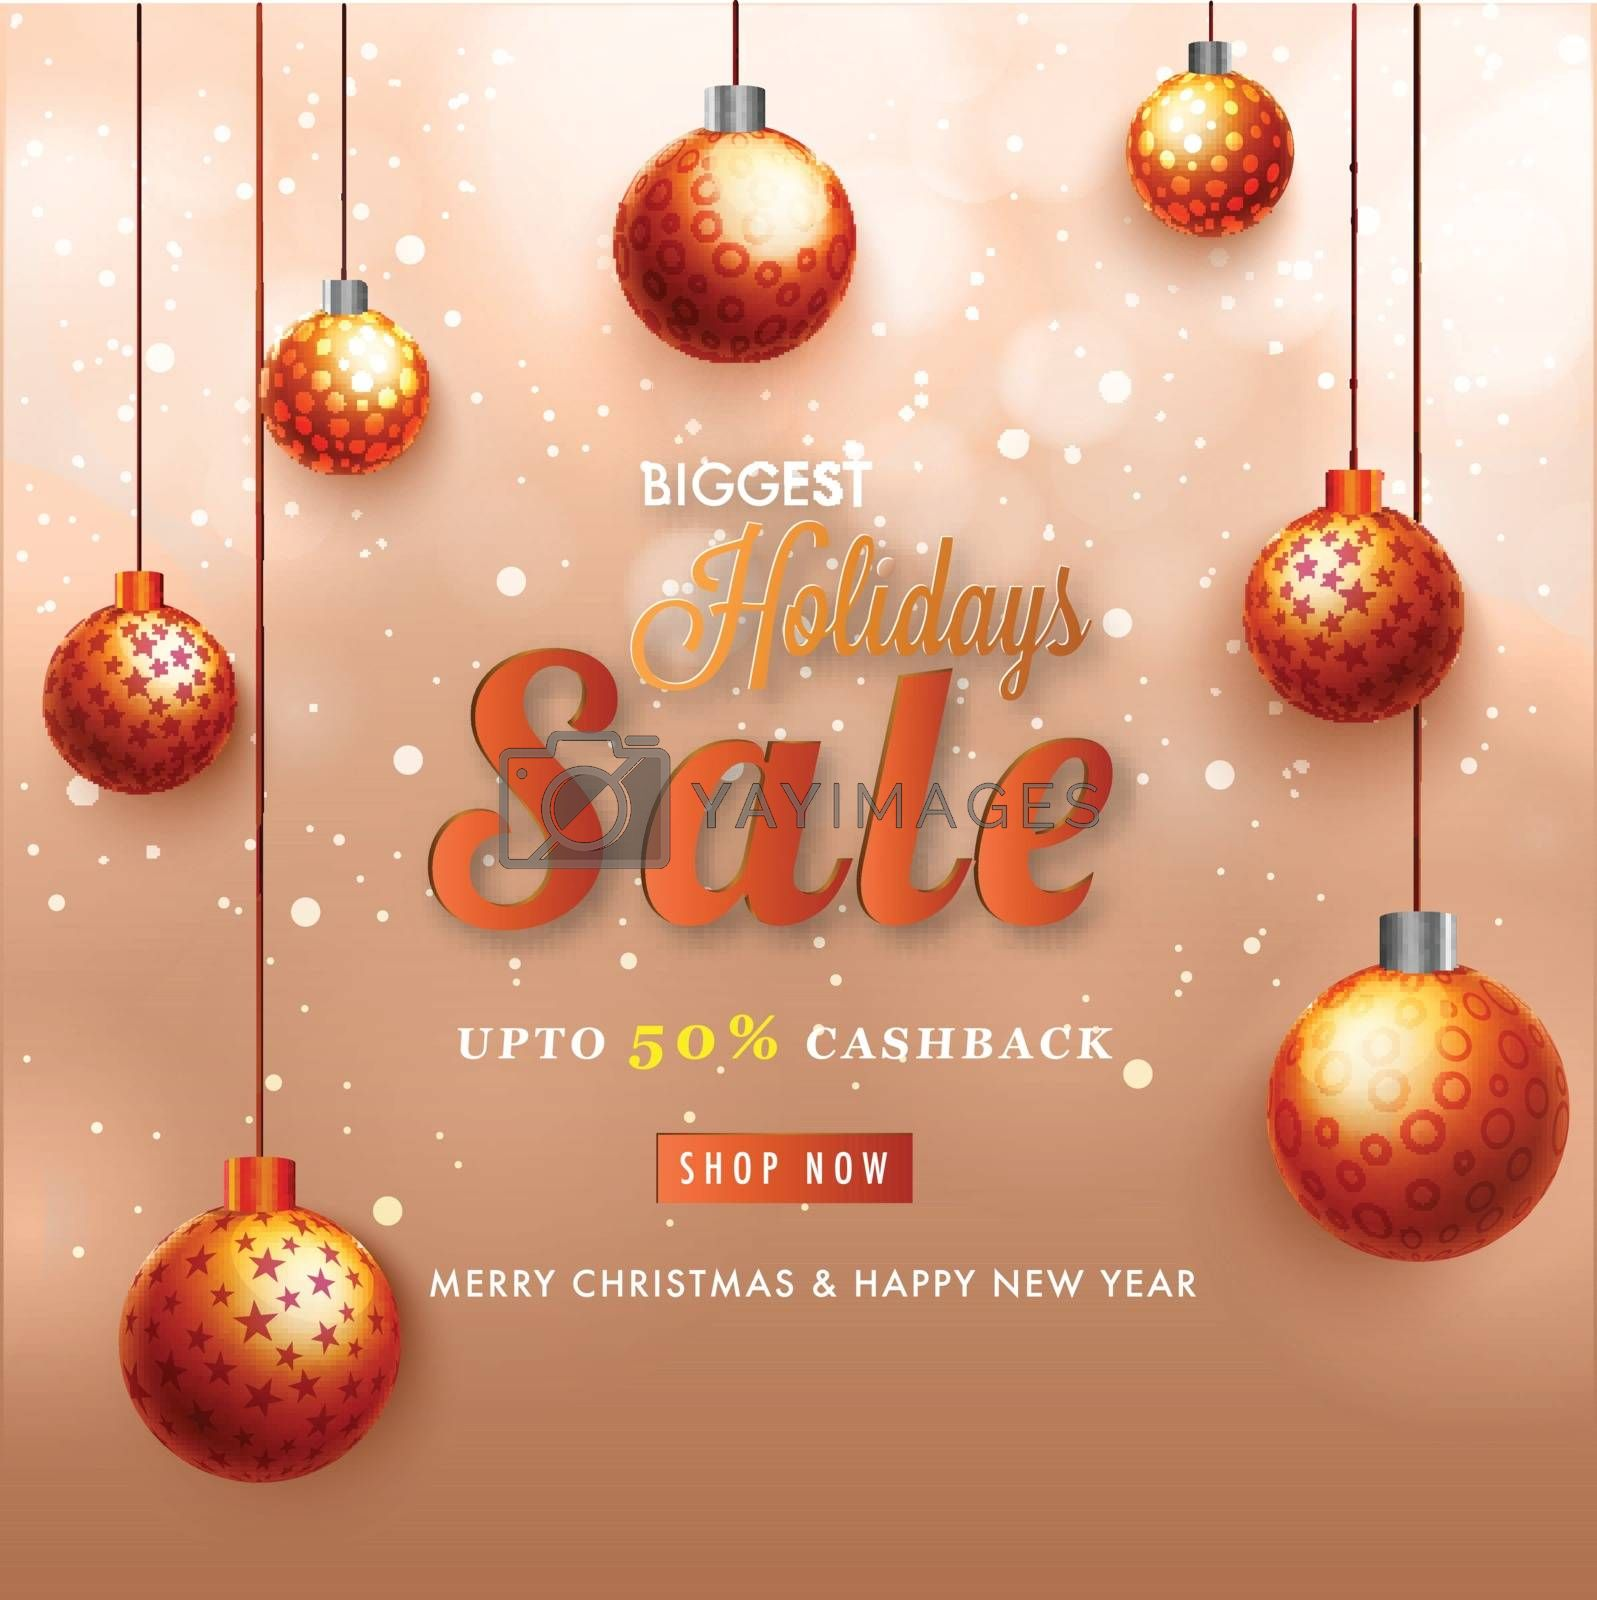 Royalty free image of Biggest Holidays Sale Banner with 50% Cashback Decorated with Ha by aispl